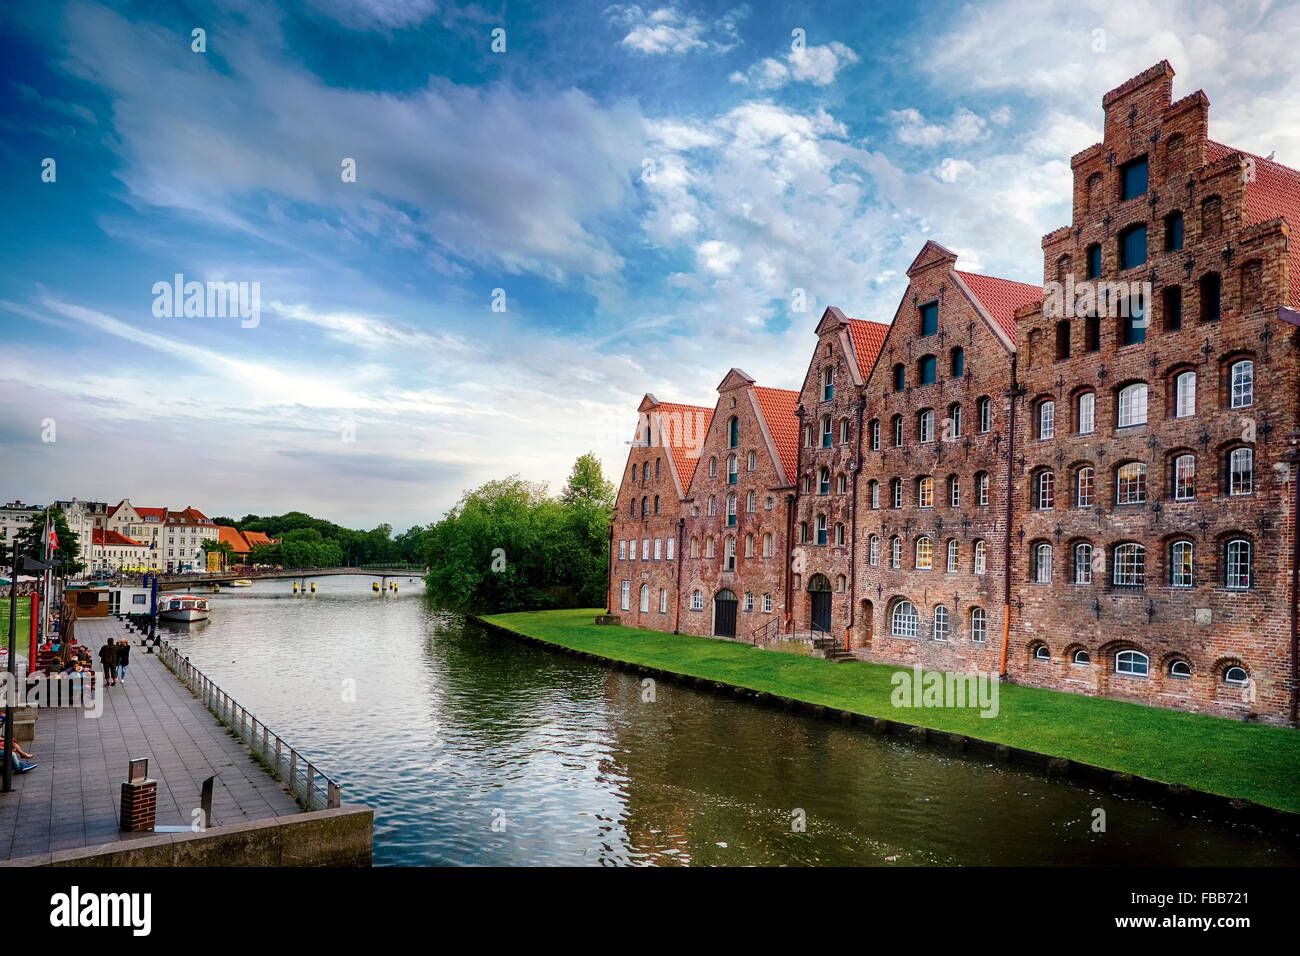 Low Angle View of Old Brick Crow-Stepped Gable Warehouse Buildings Along a Canal, Old Town Lubeck, Schleswig-Holstein, - Stock Image